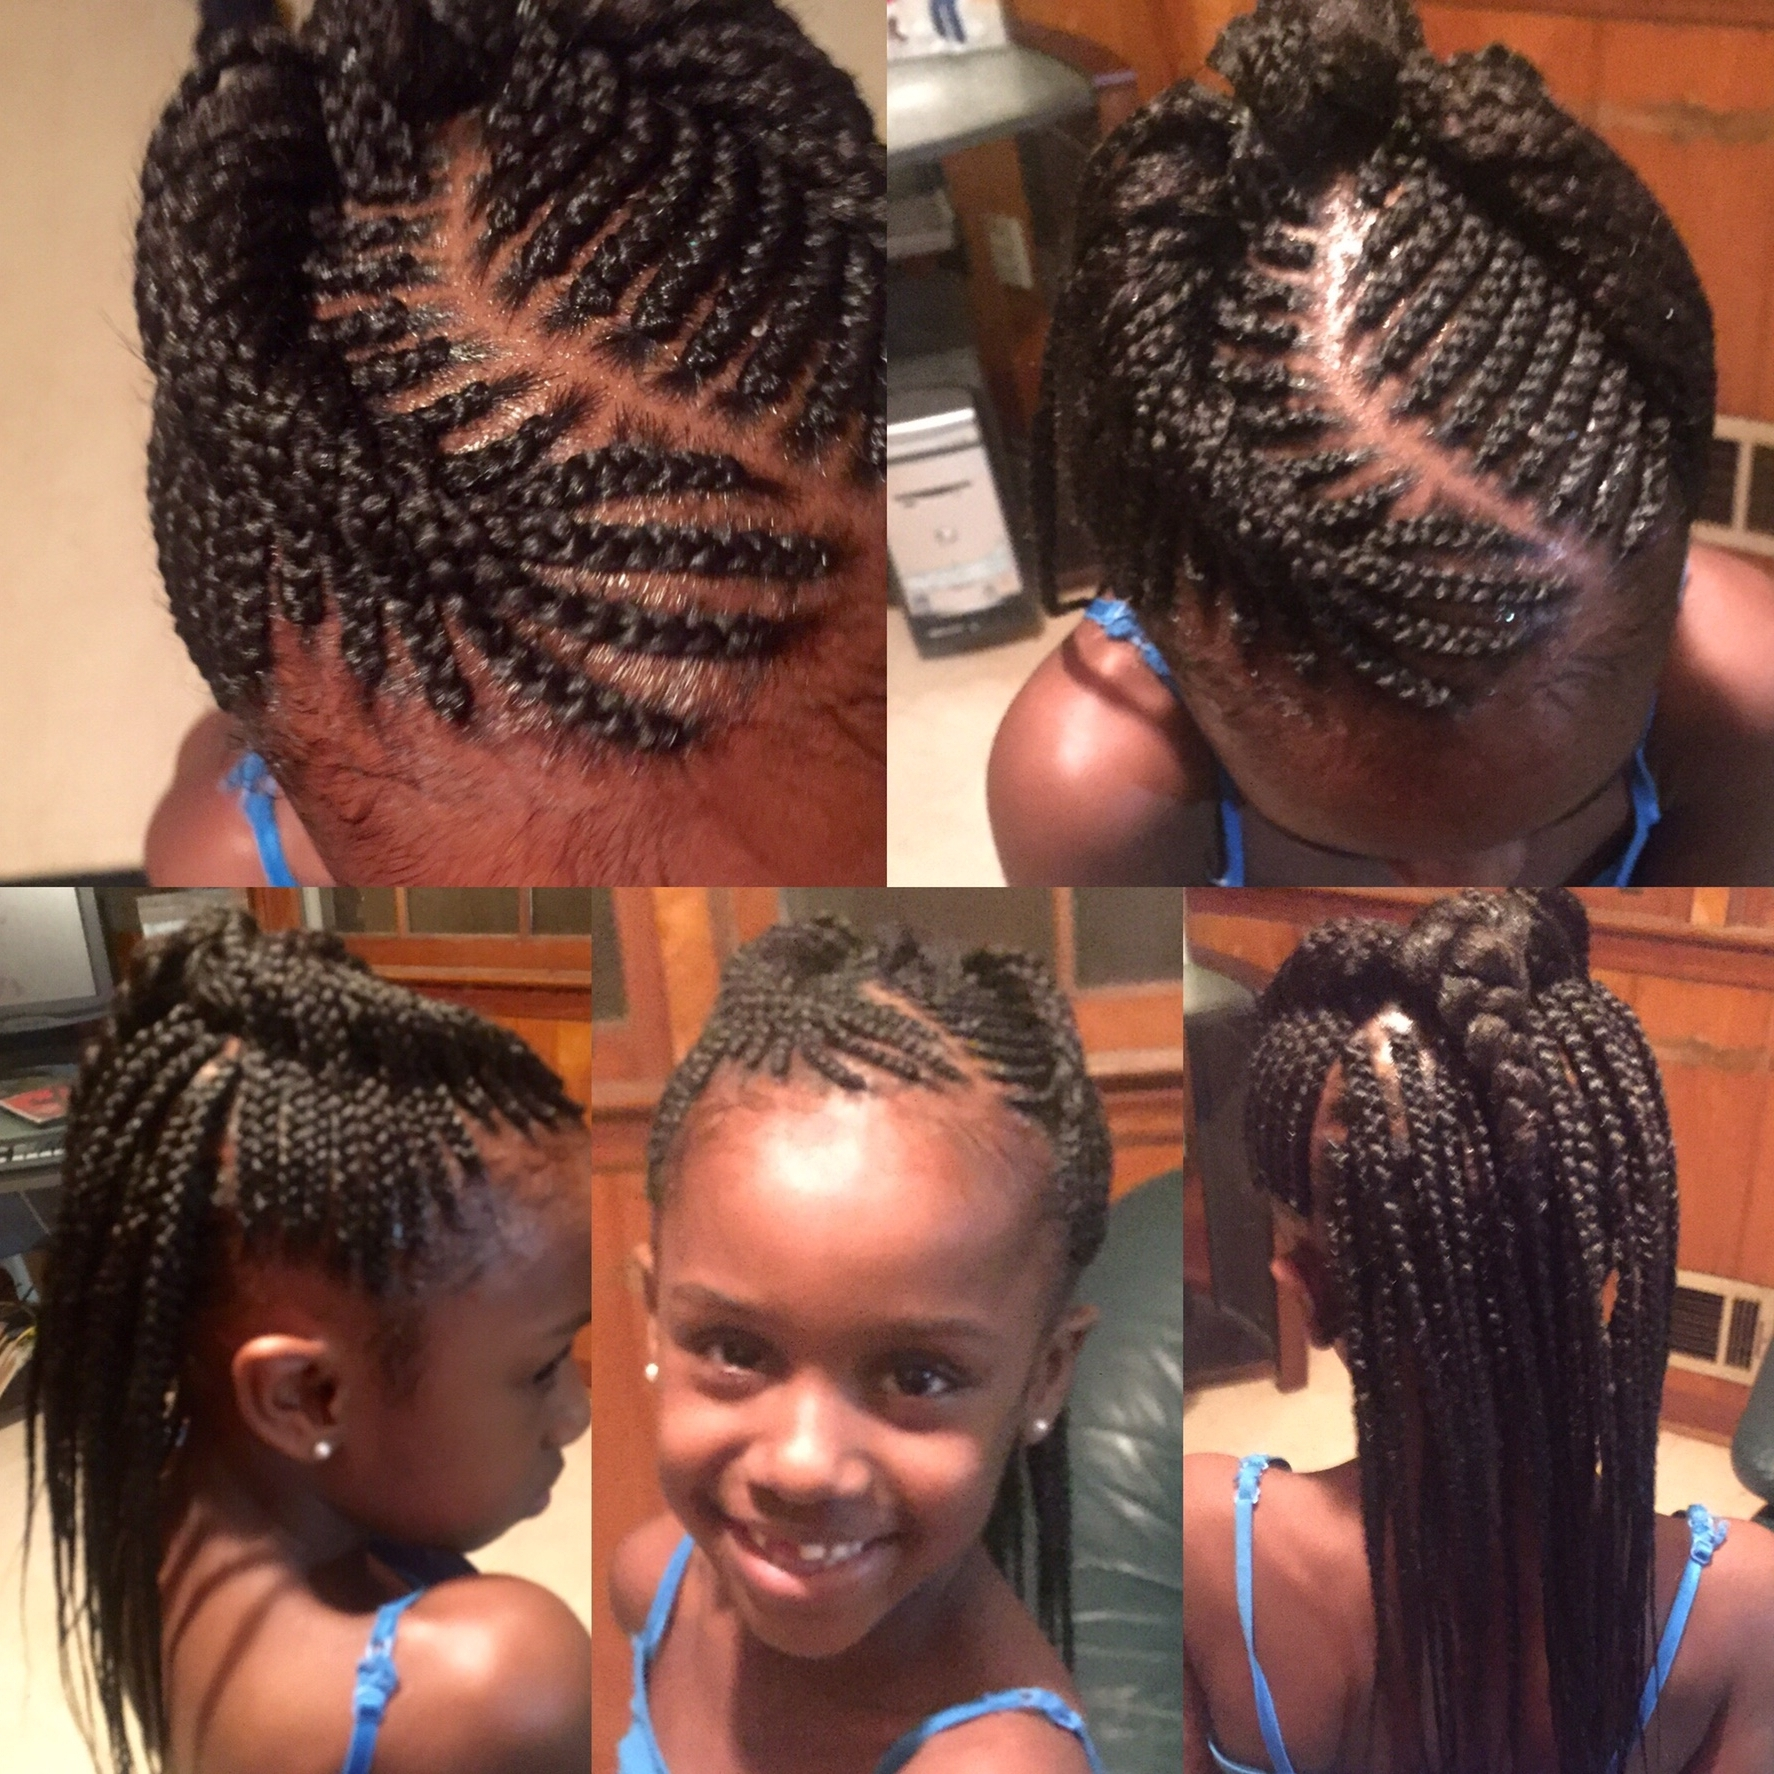 Cornrow Braid Hairstyles For Kids Amusing Hairstyles For Kids Braids Within Fashionable Cornrows Hairstyles With Own Hair (View 4 of 15)